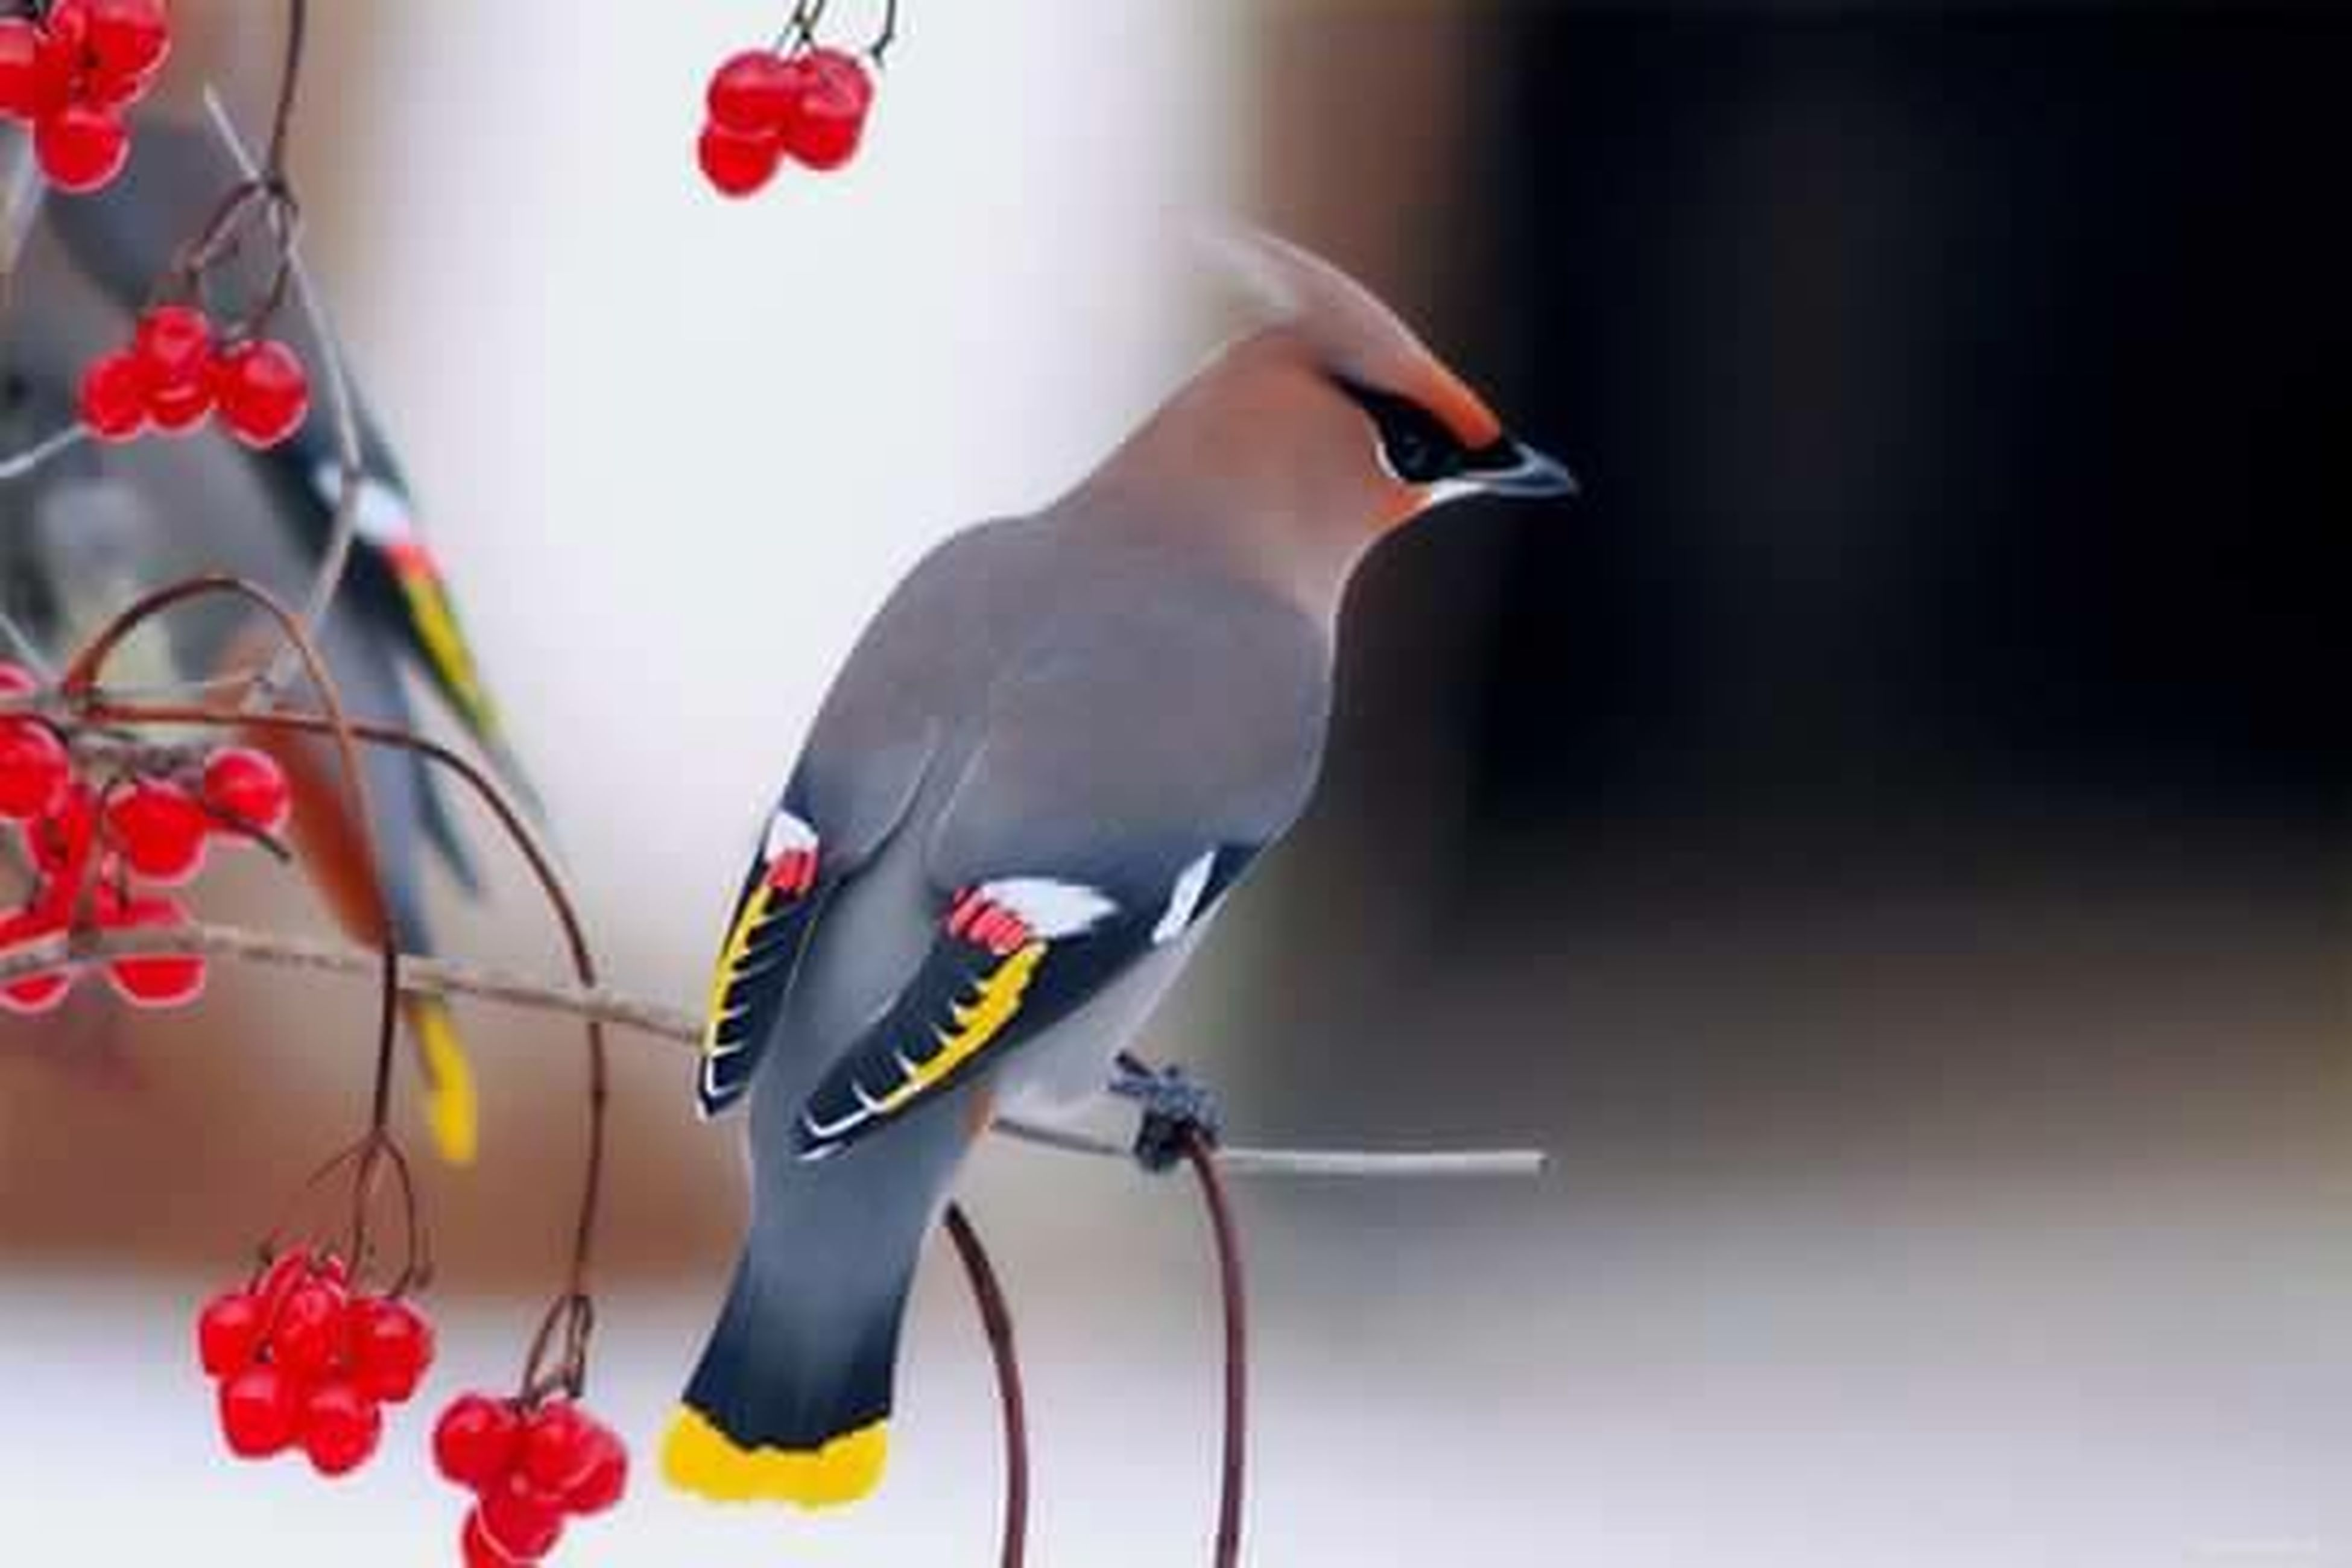 indoors, red, bird, hanging, wall - building feature, home interior, table, close-up, animal themes, decoration, no people, focus on foreground, animal representation, wall, vase, one animal, flower, day, sunlight, art and craft